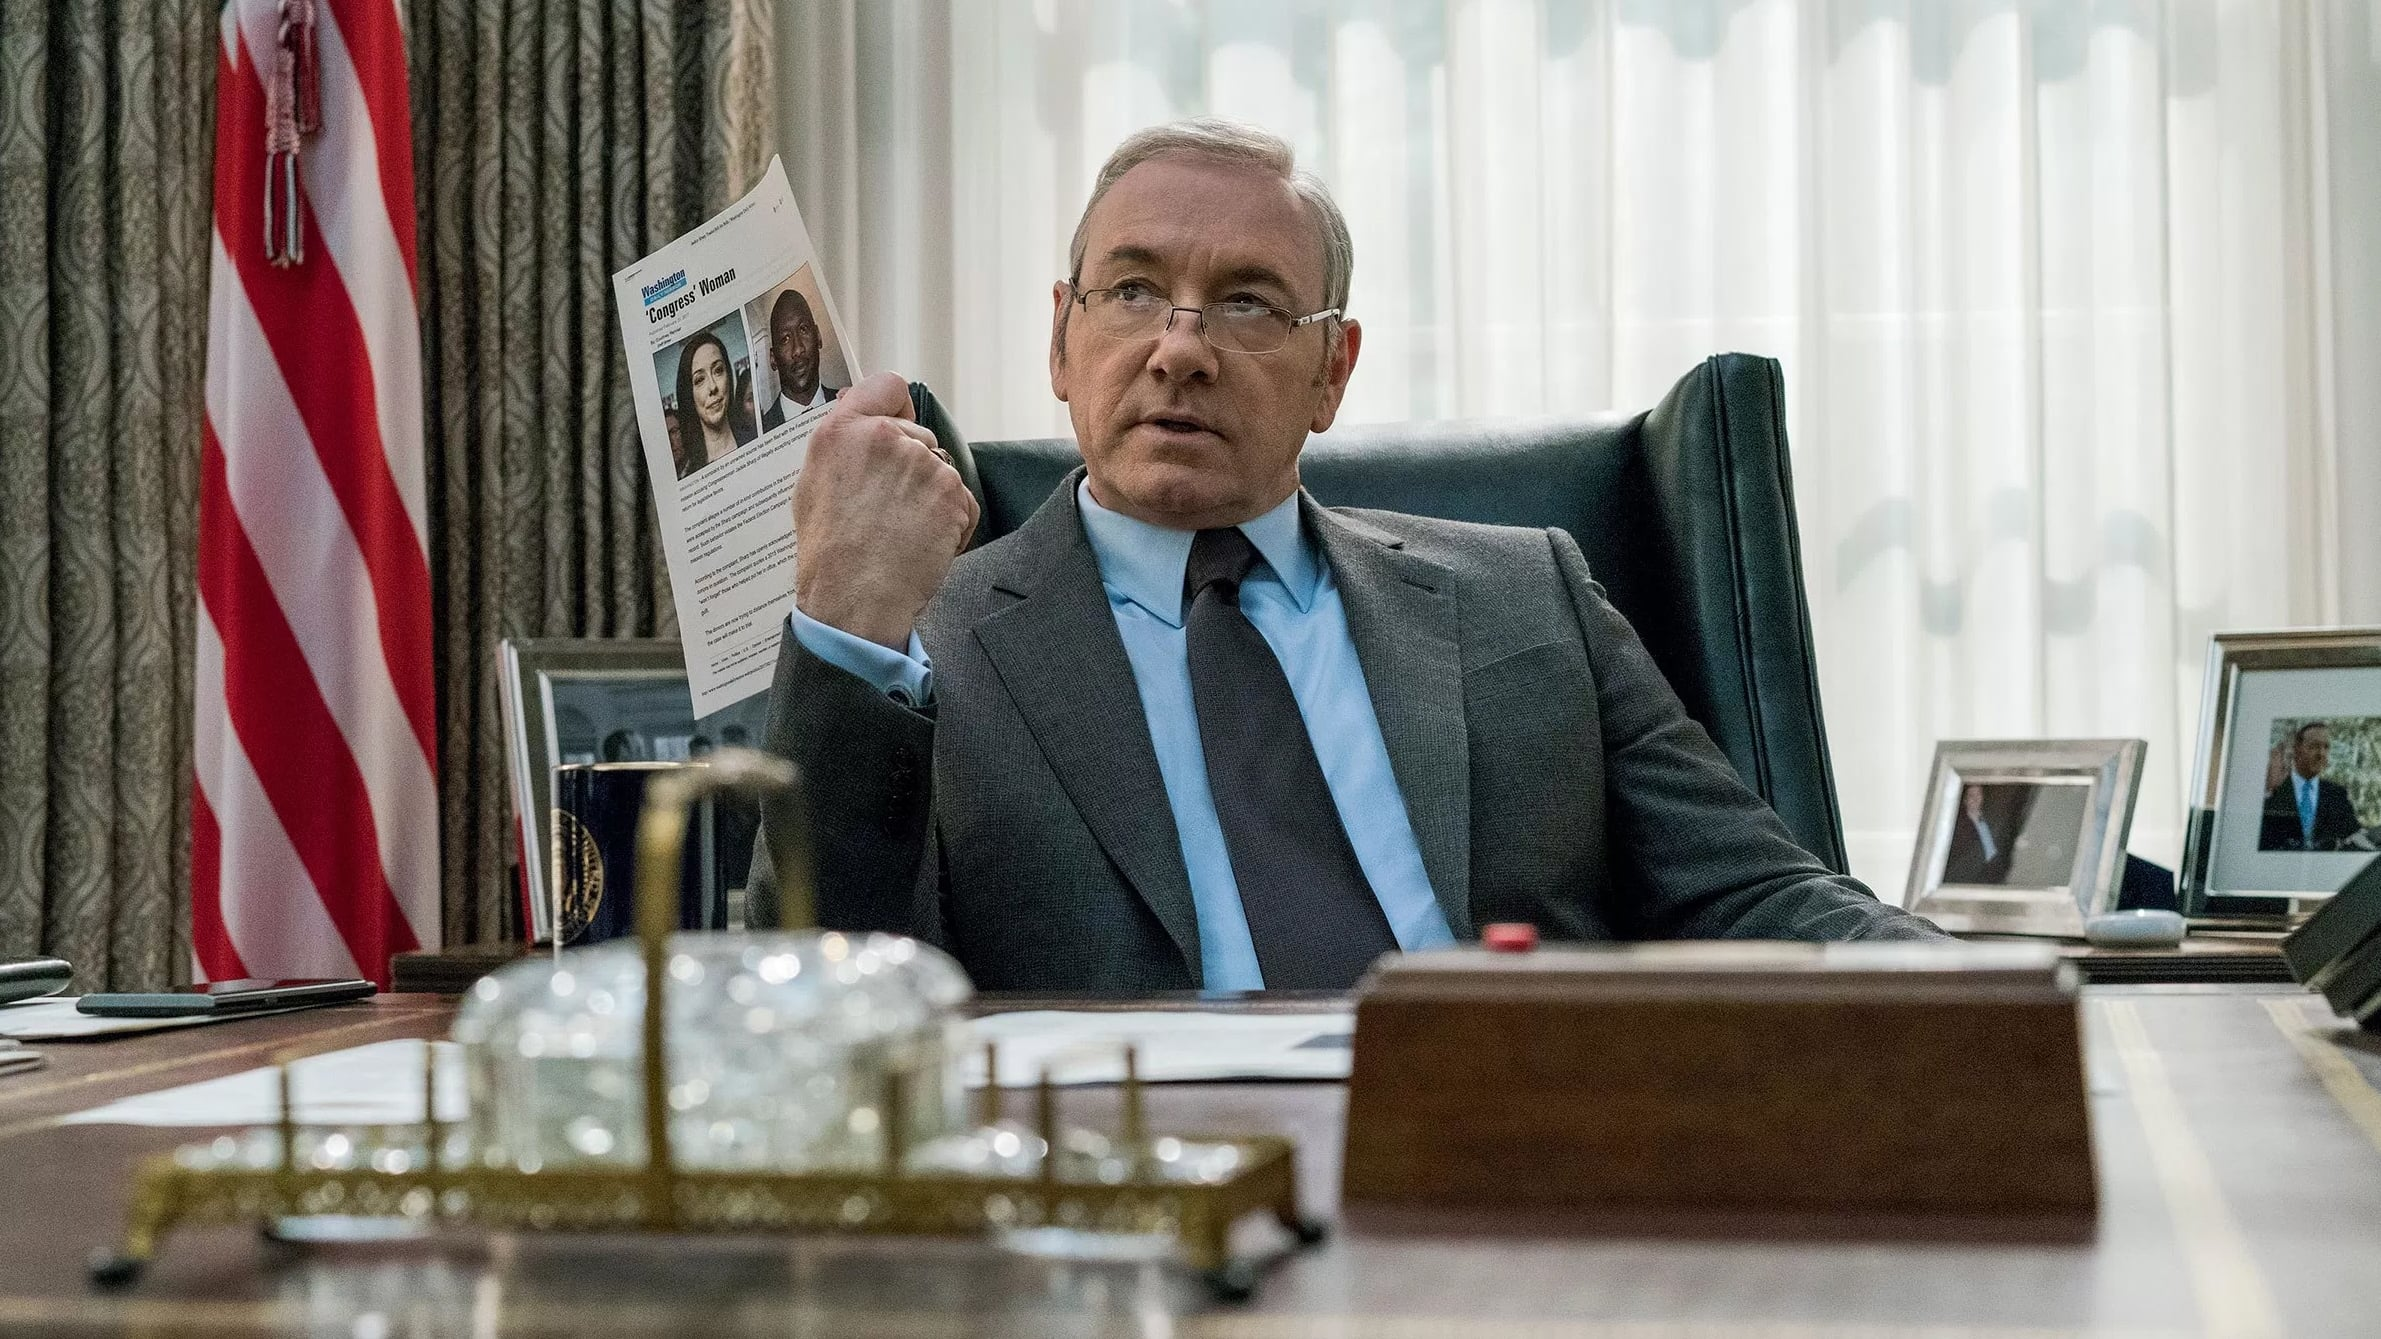 House of cards 5 temporada